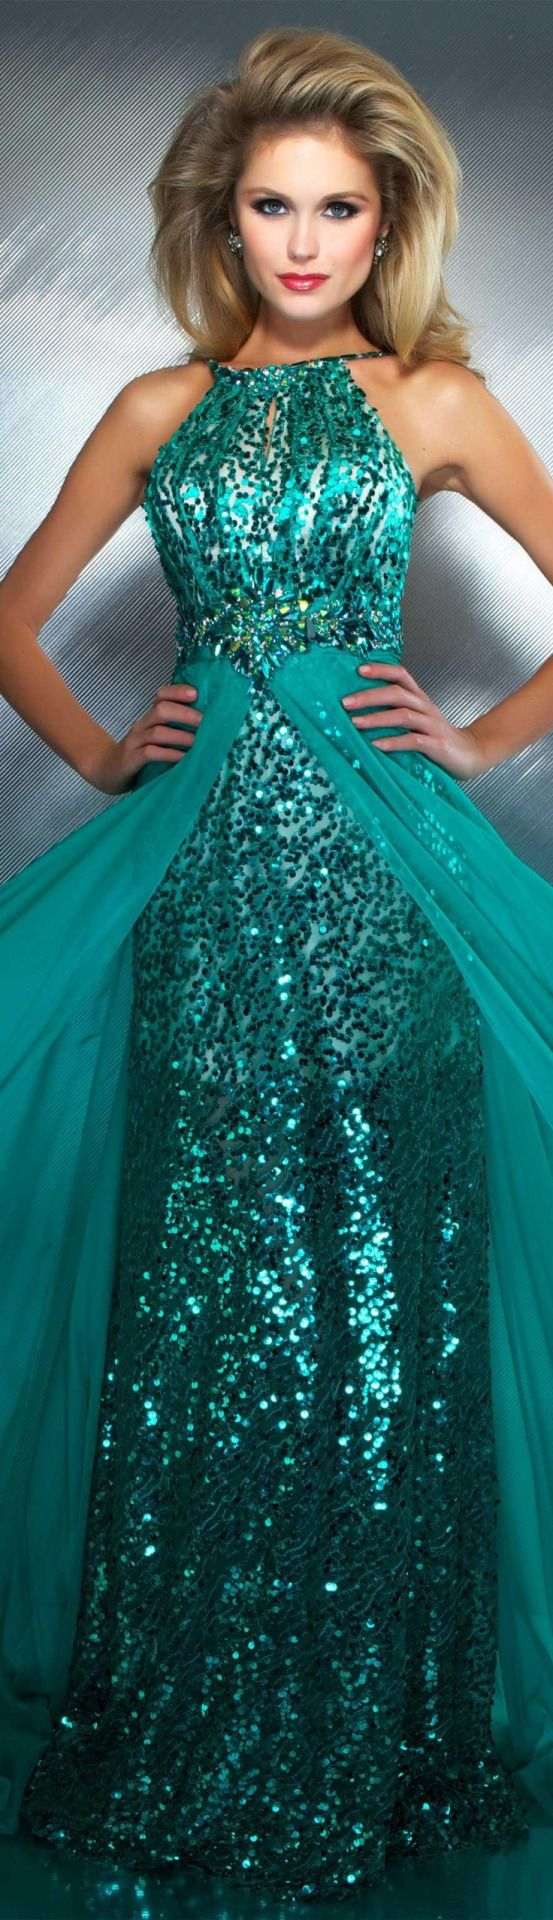 38 best Bridesmaid\'s Dress Inspiration images on Pinterest | Party ...